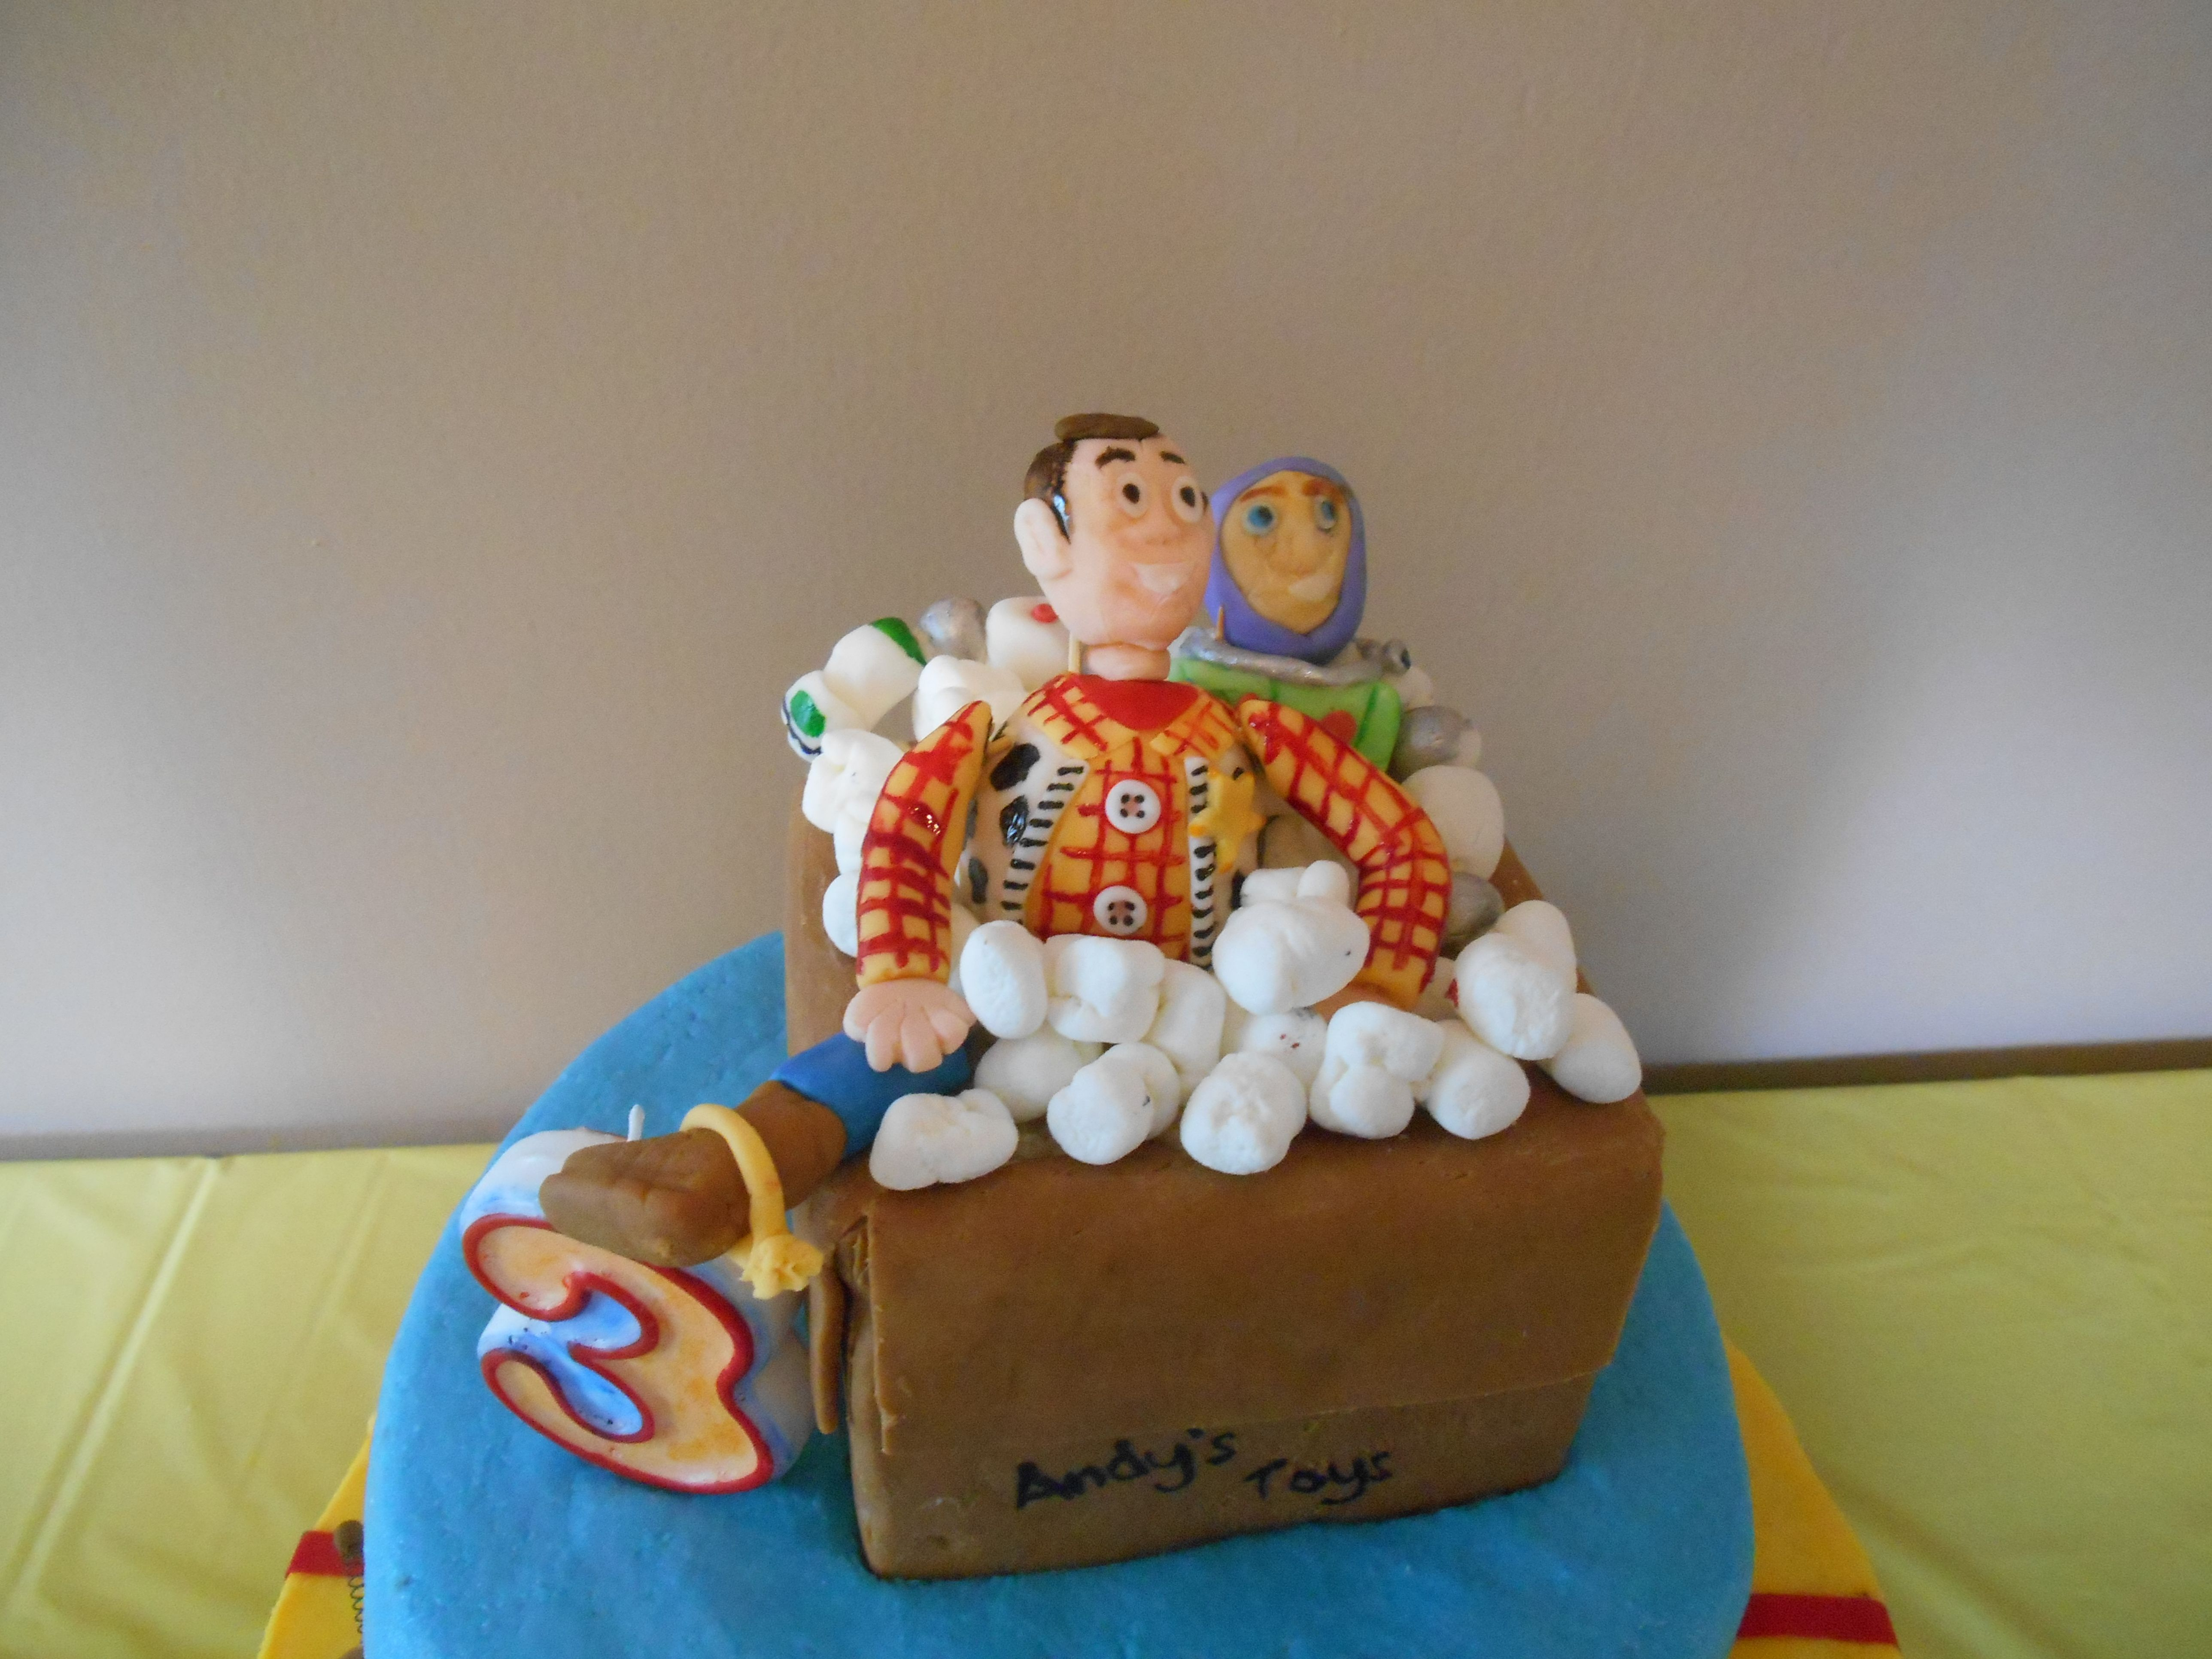 Buzz and Woody on Grant's Toy Story cake. Toy story